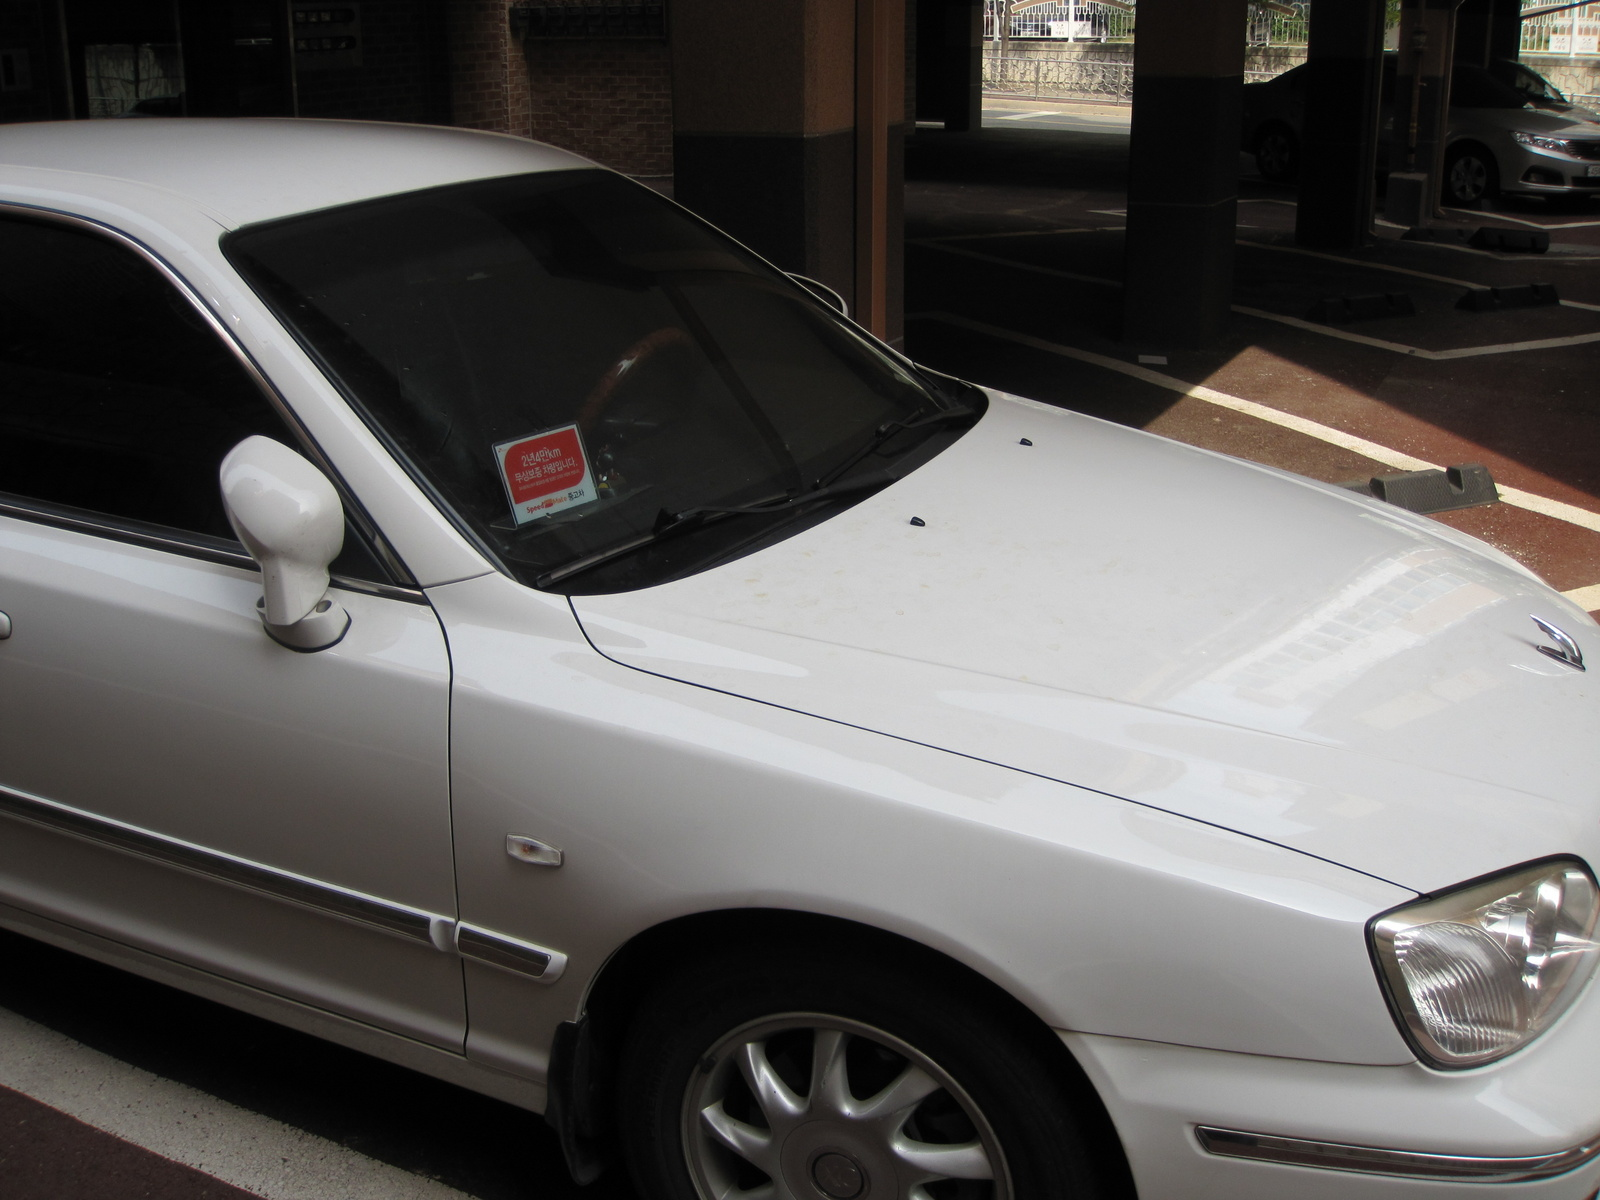 Picture of 2006 Hyundai Azera